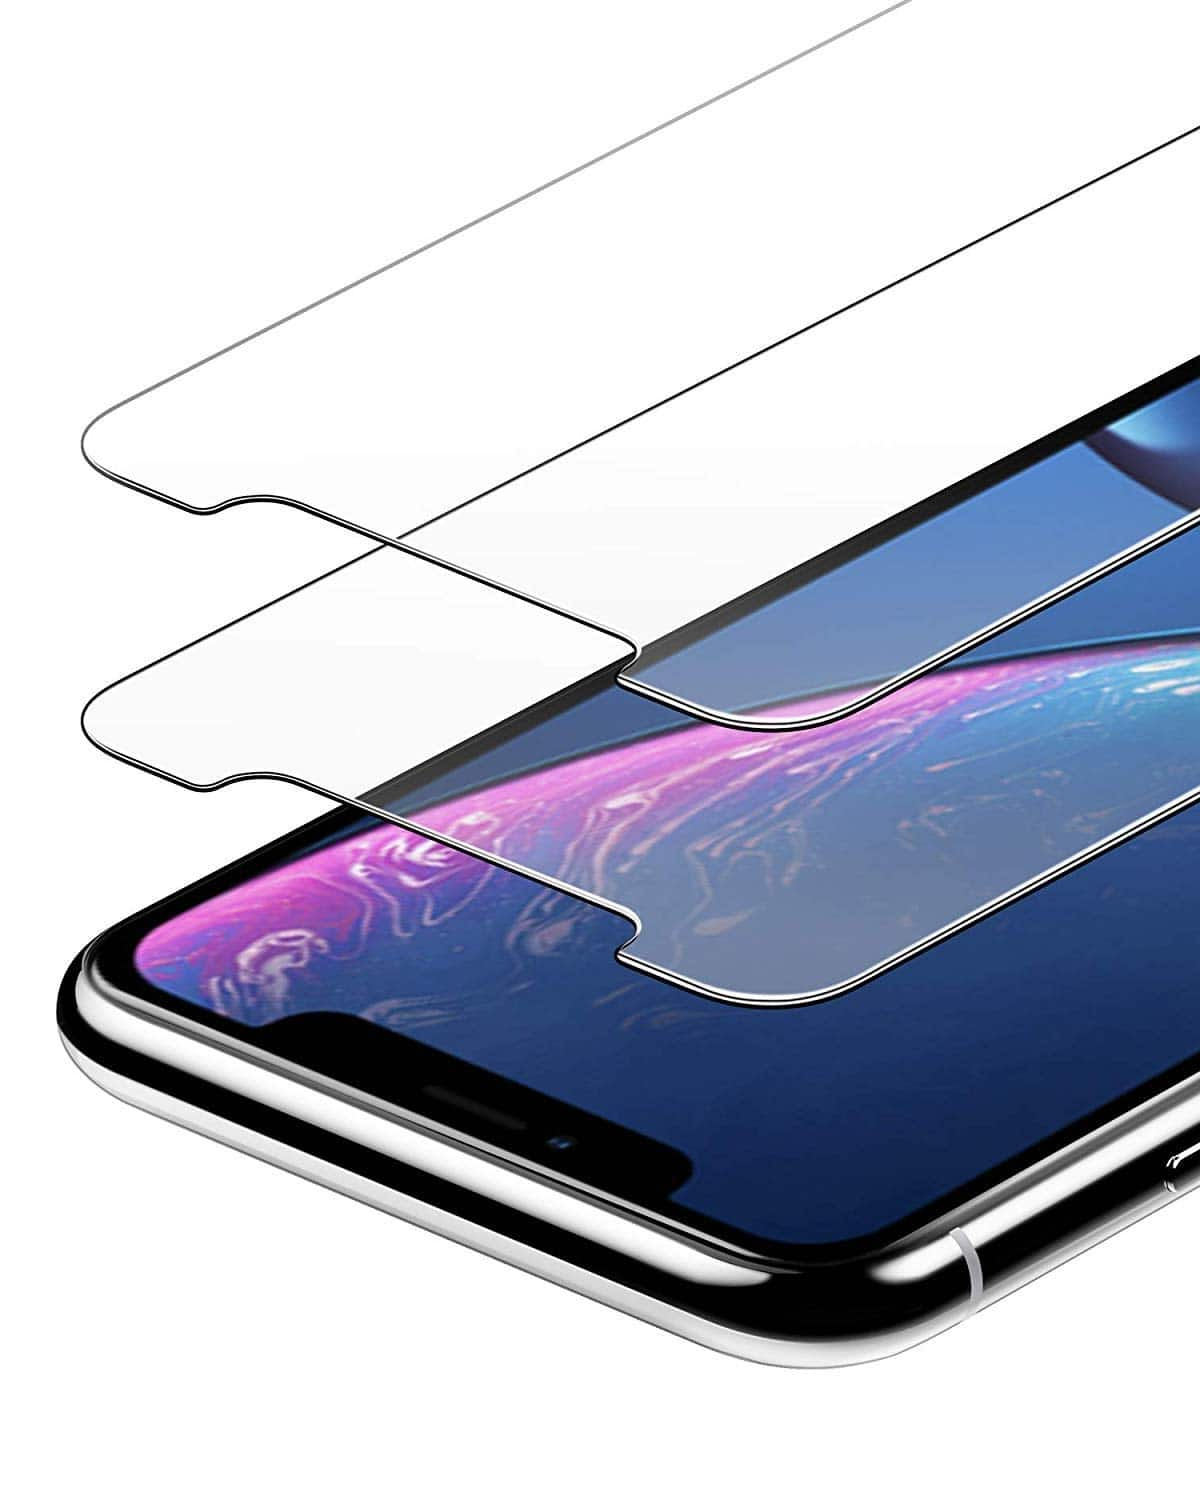 2-Pack Anker GlassGuard Screen Protectors for iPhone XR/11 or Xs Max/11 Pro Max $3